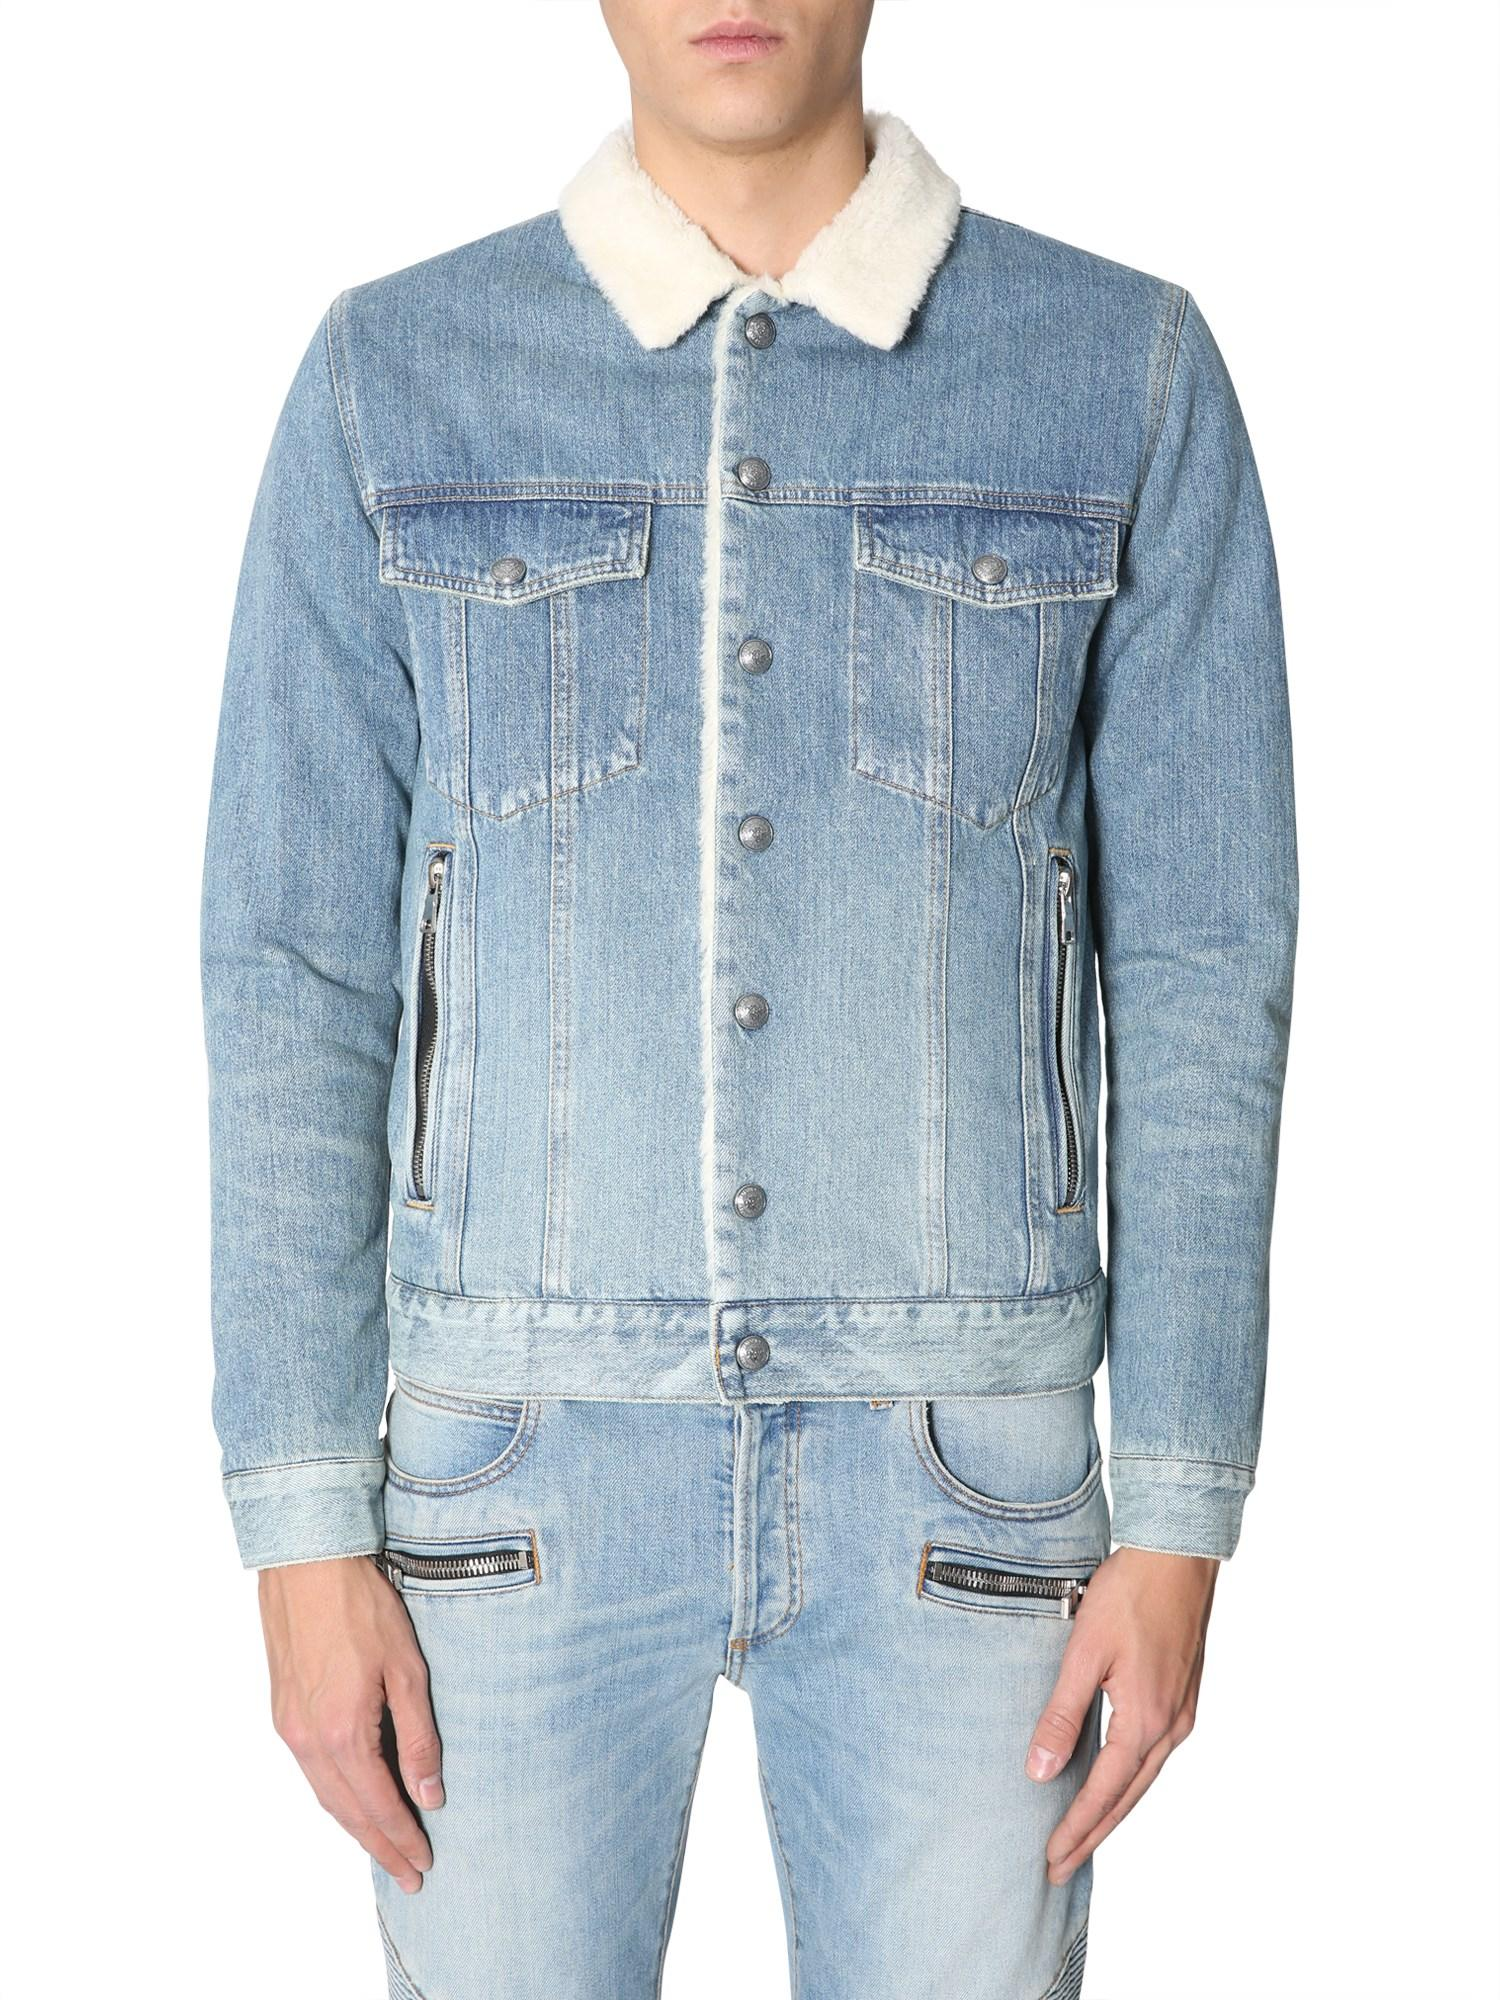 53cb6df48e Lyst - Balmain Shearling Denim Jacket in Blue for Men - Save 60%